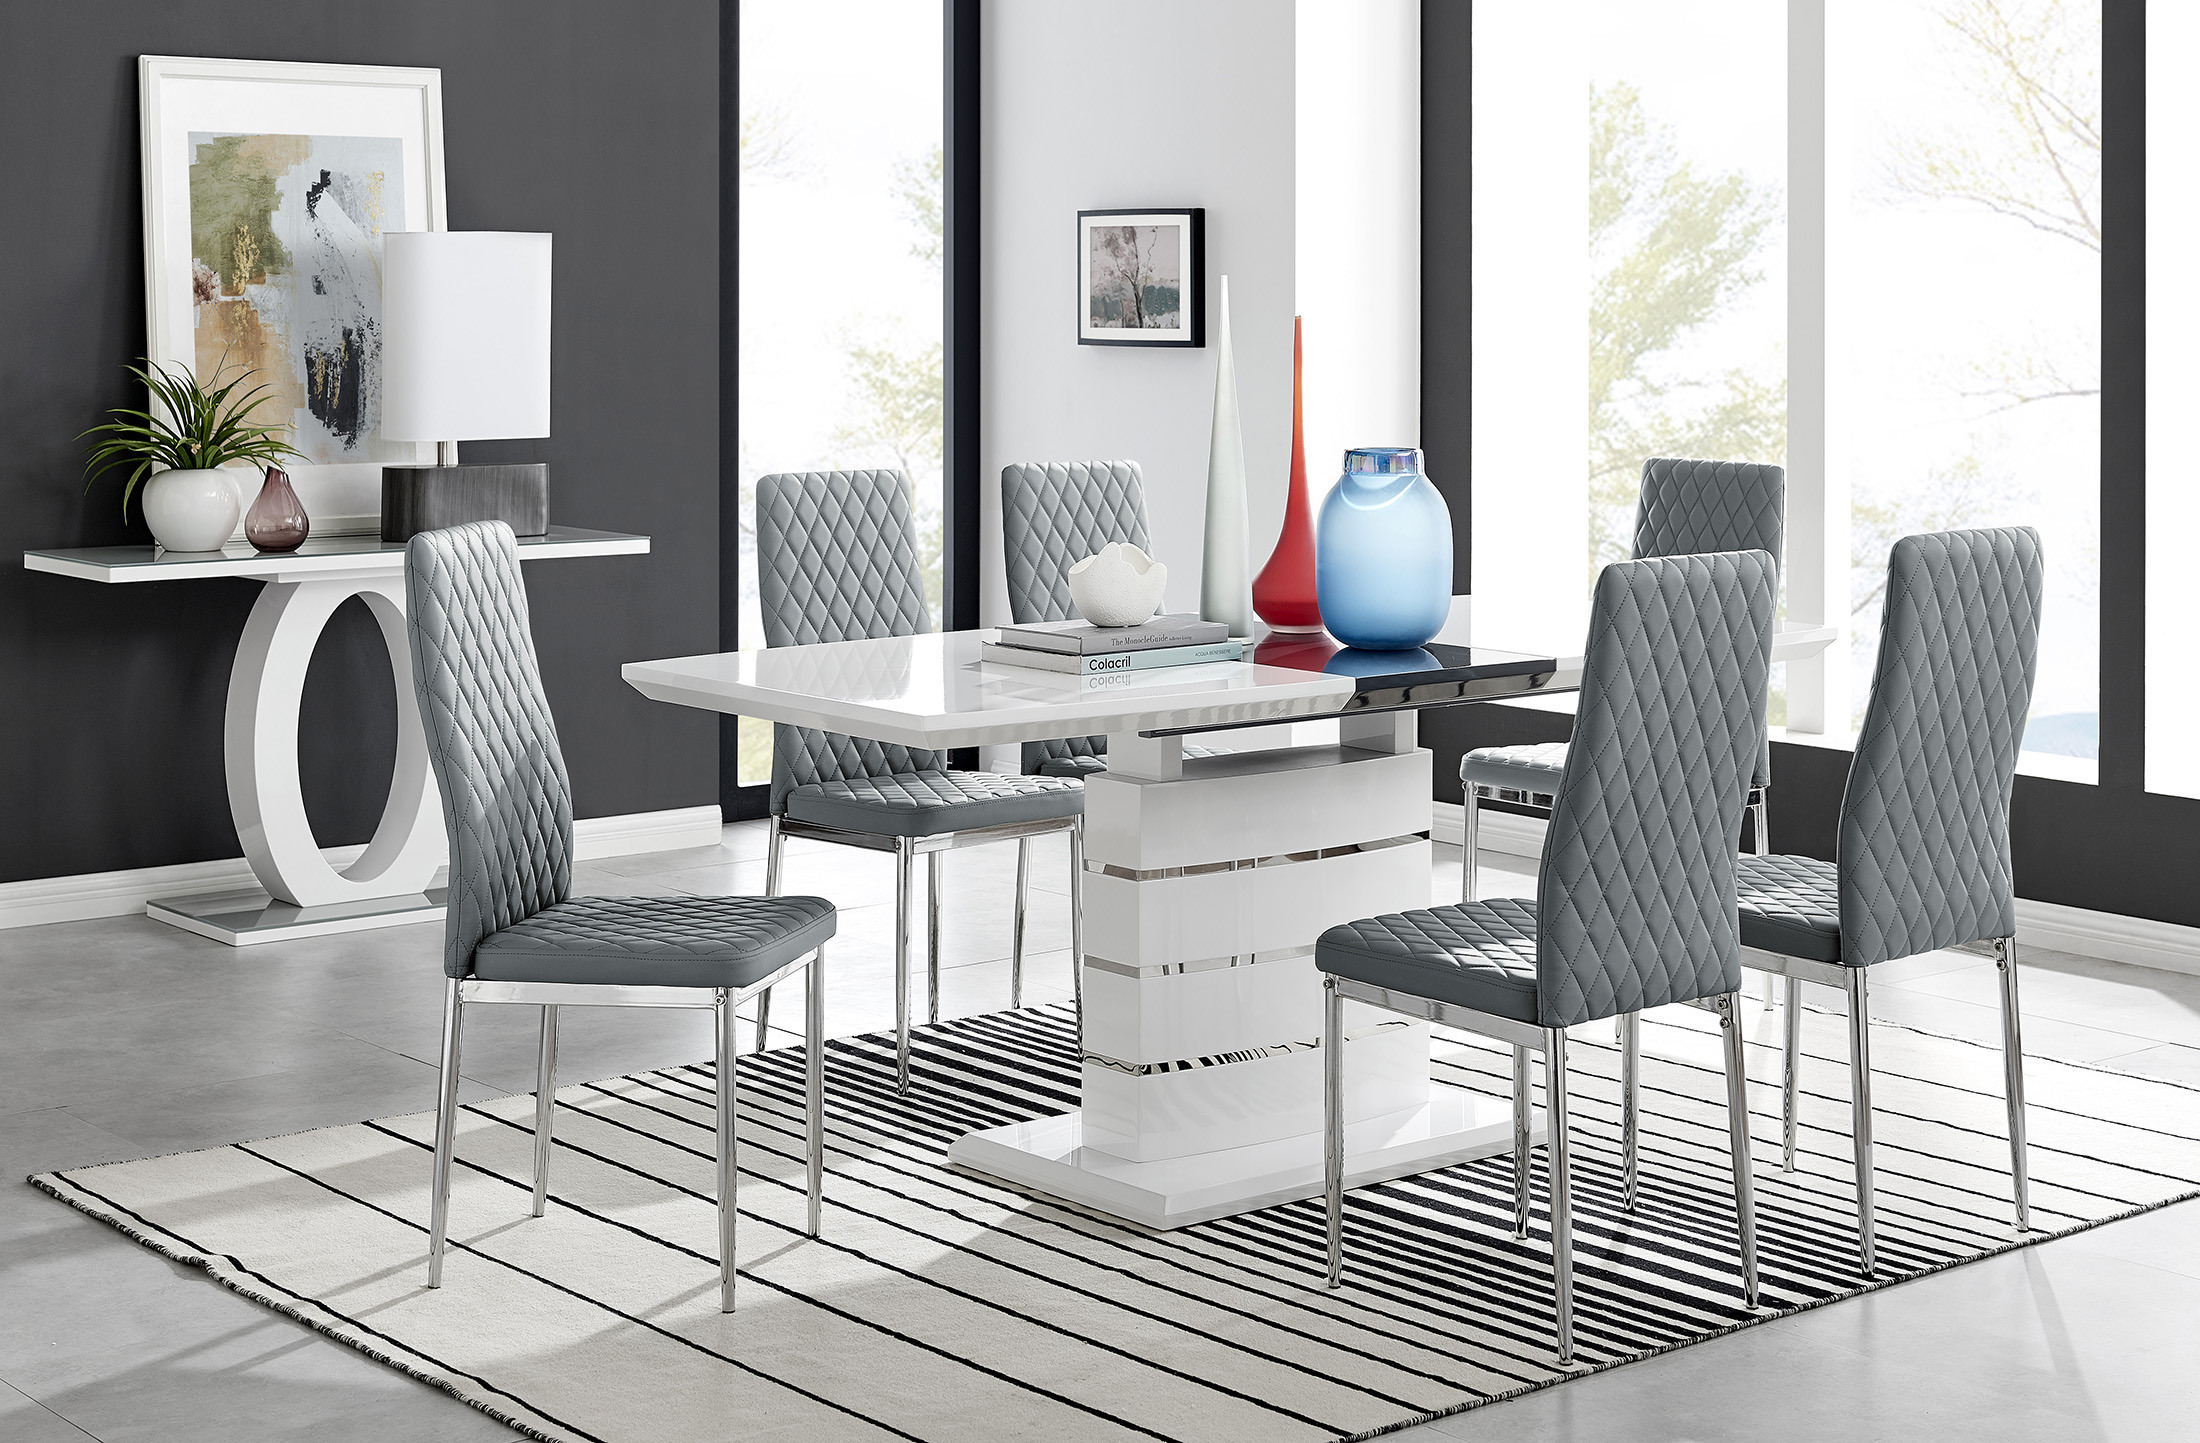 White Gloss Extending Dining Table 6, A Dining Room Table With 6 Chairs